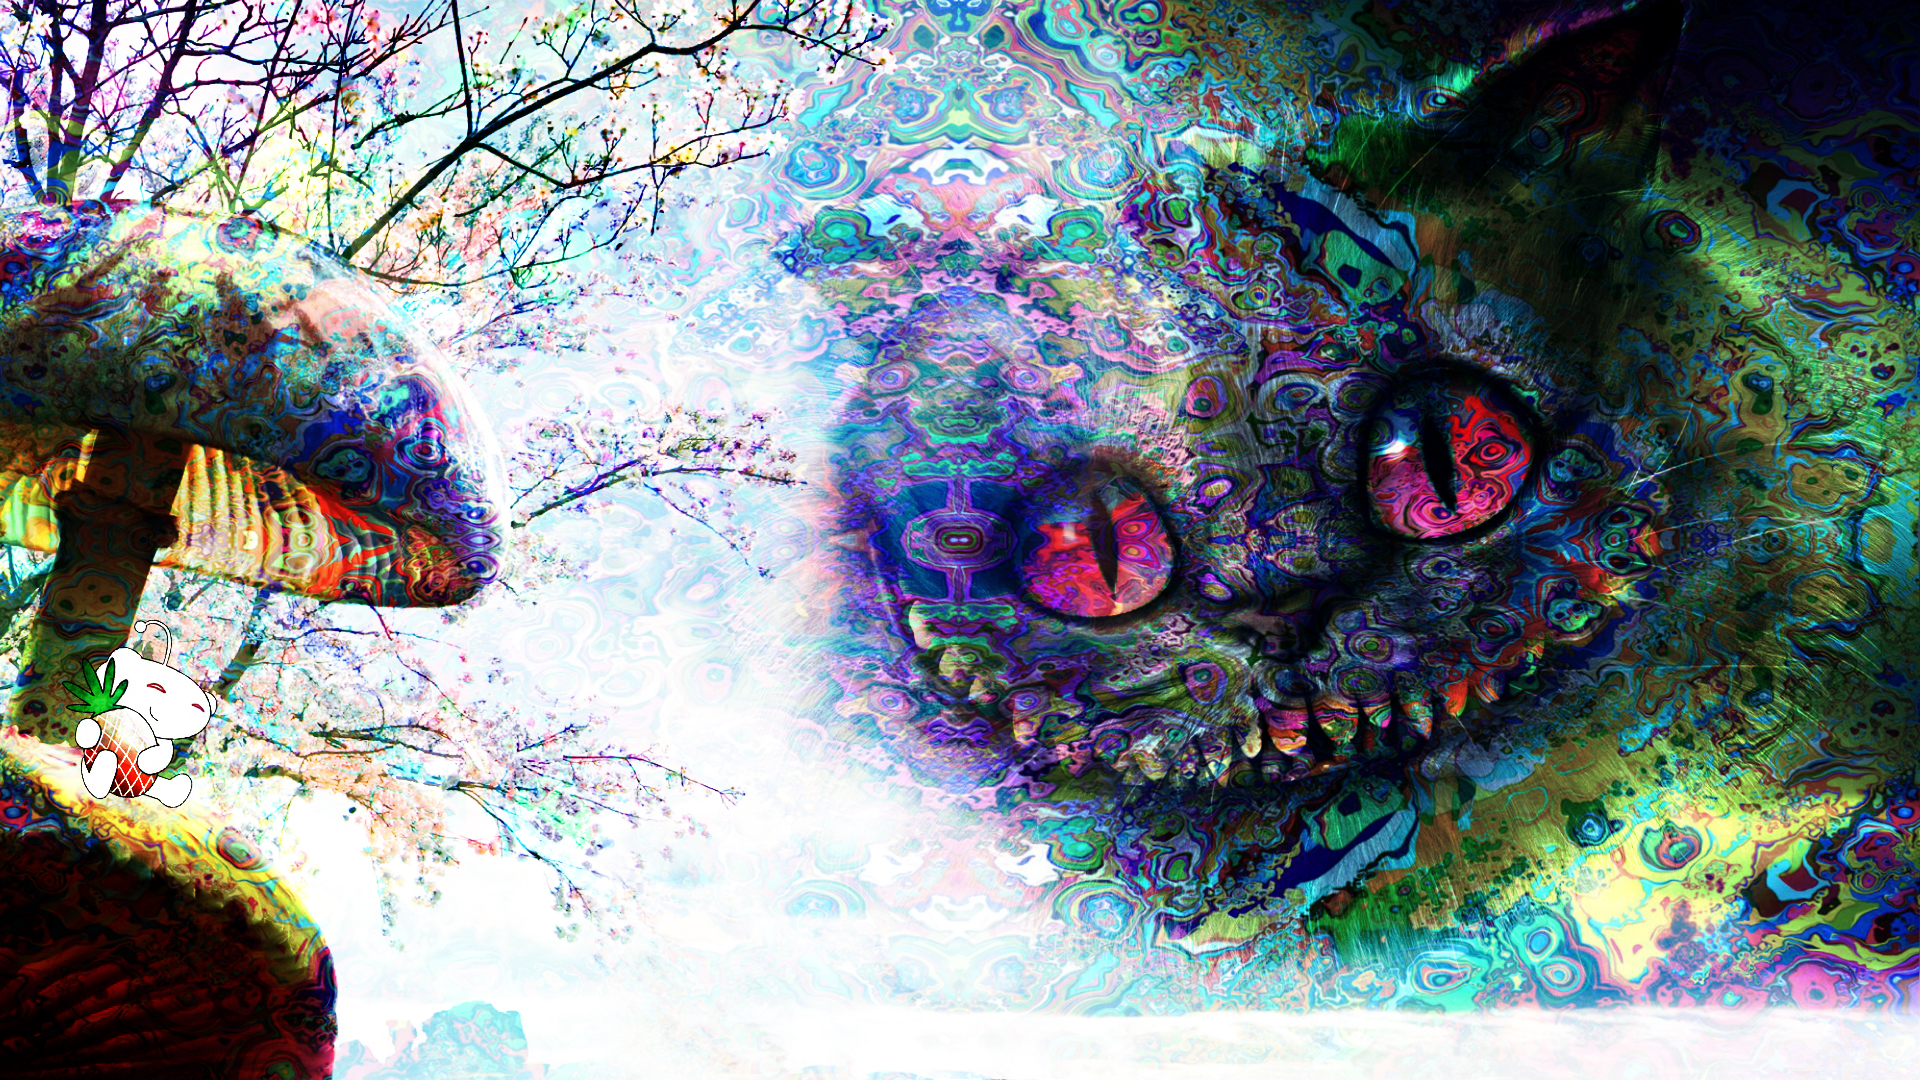 Cheshire Cat by ConfusedNarwhal on DeviantArt